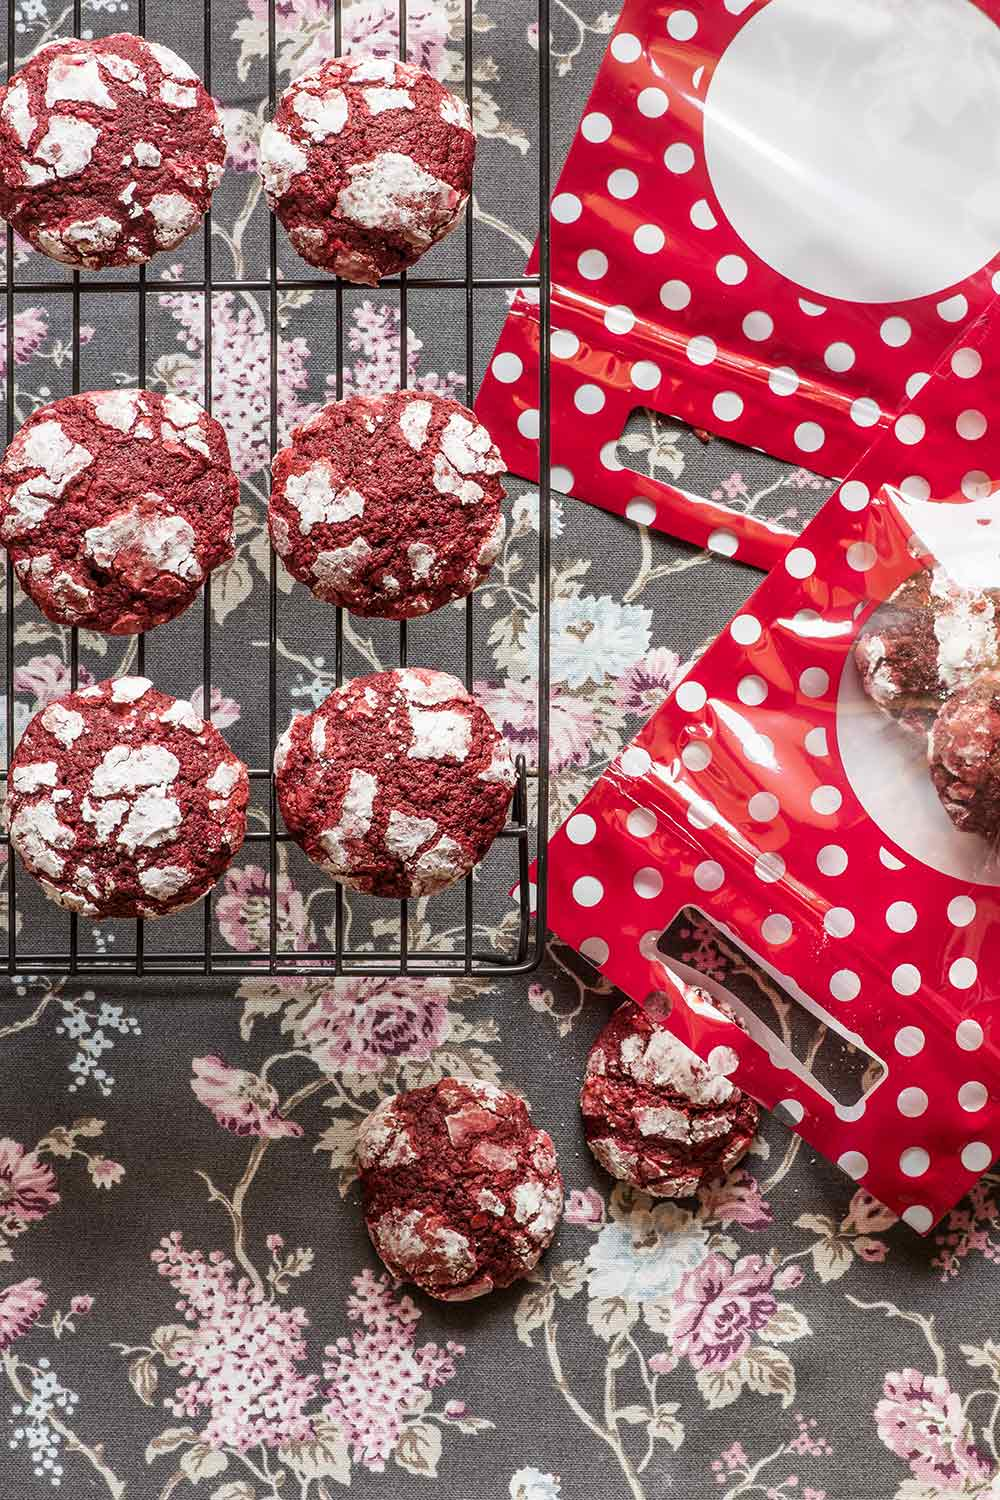 receta crinkled cookies red velvet